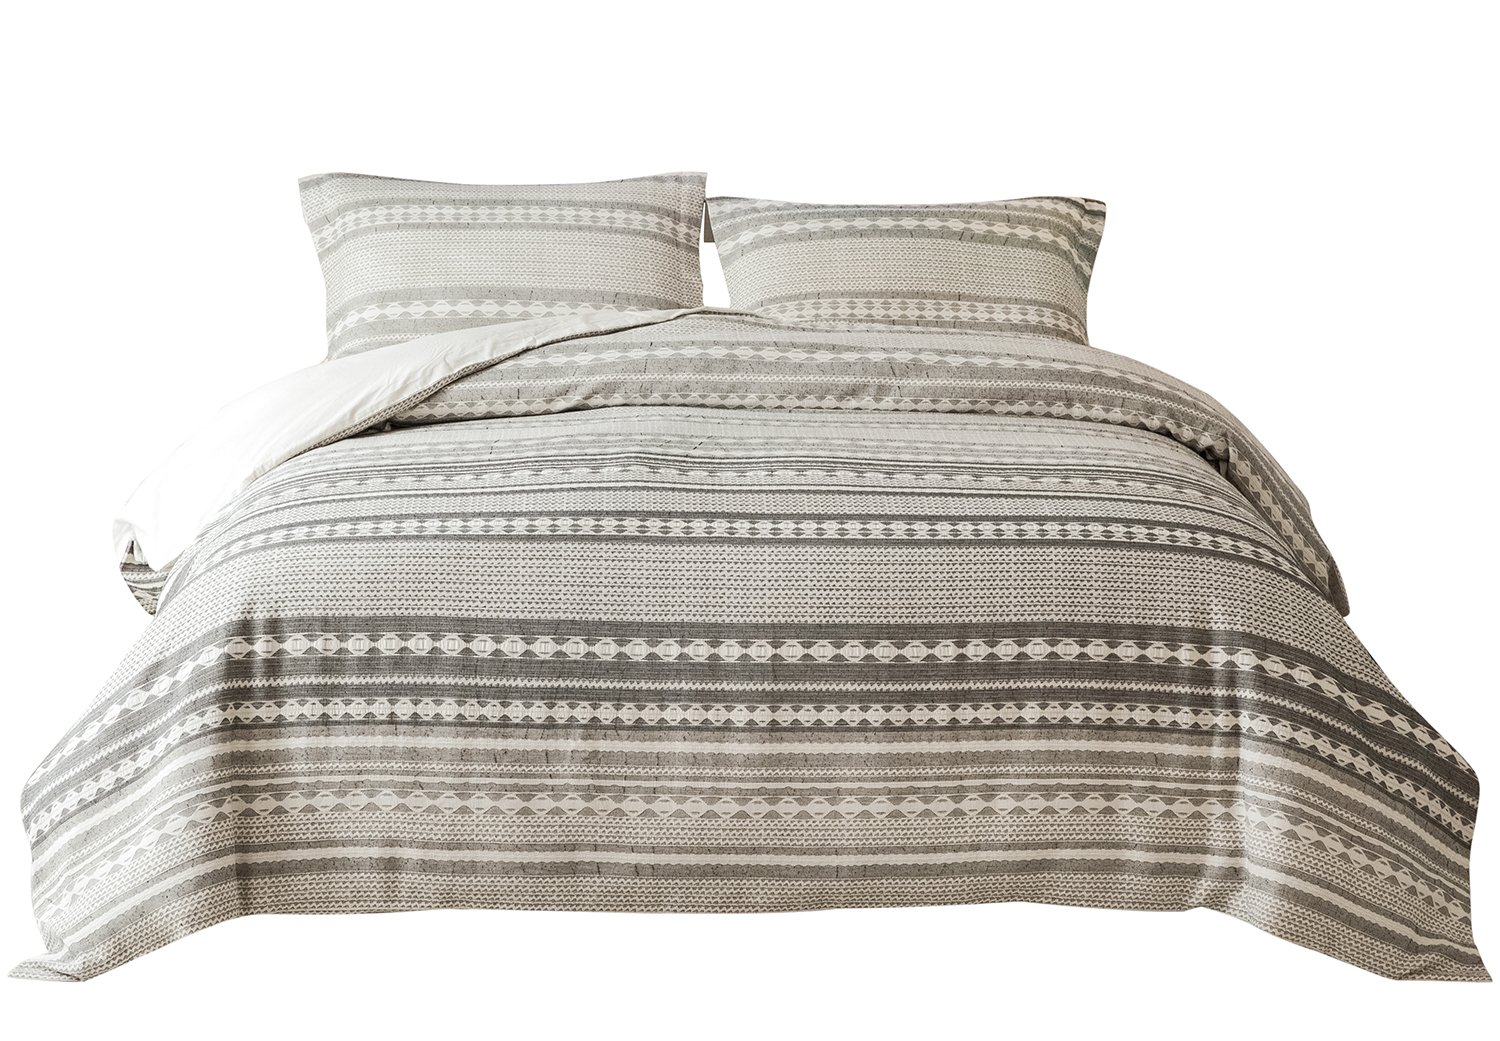 PHF Yarn Dyed Duvet Cover Set Jacquard Bedding 100% Cotton 3 Pieces King Size Grey